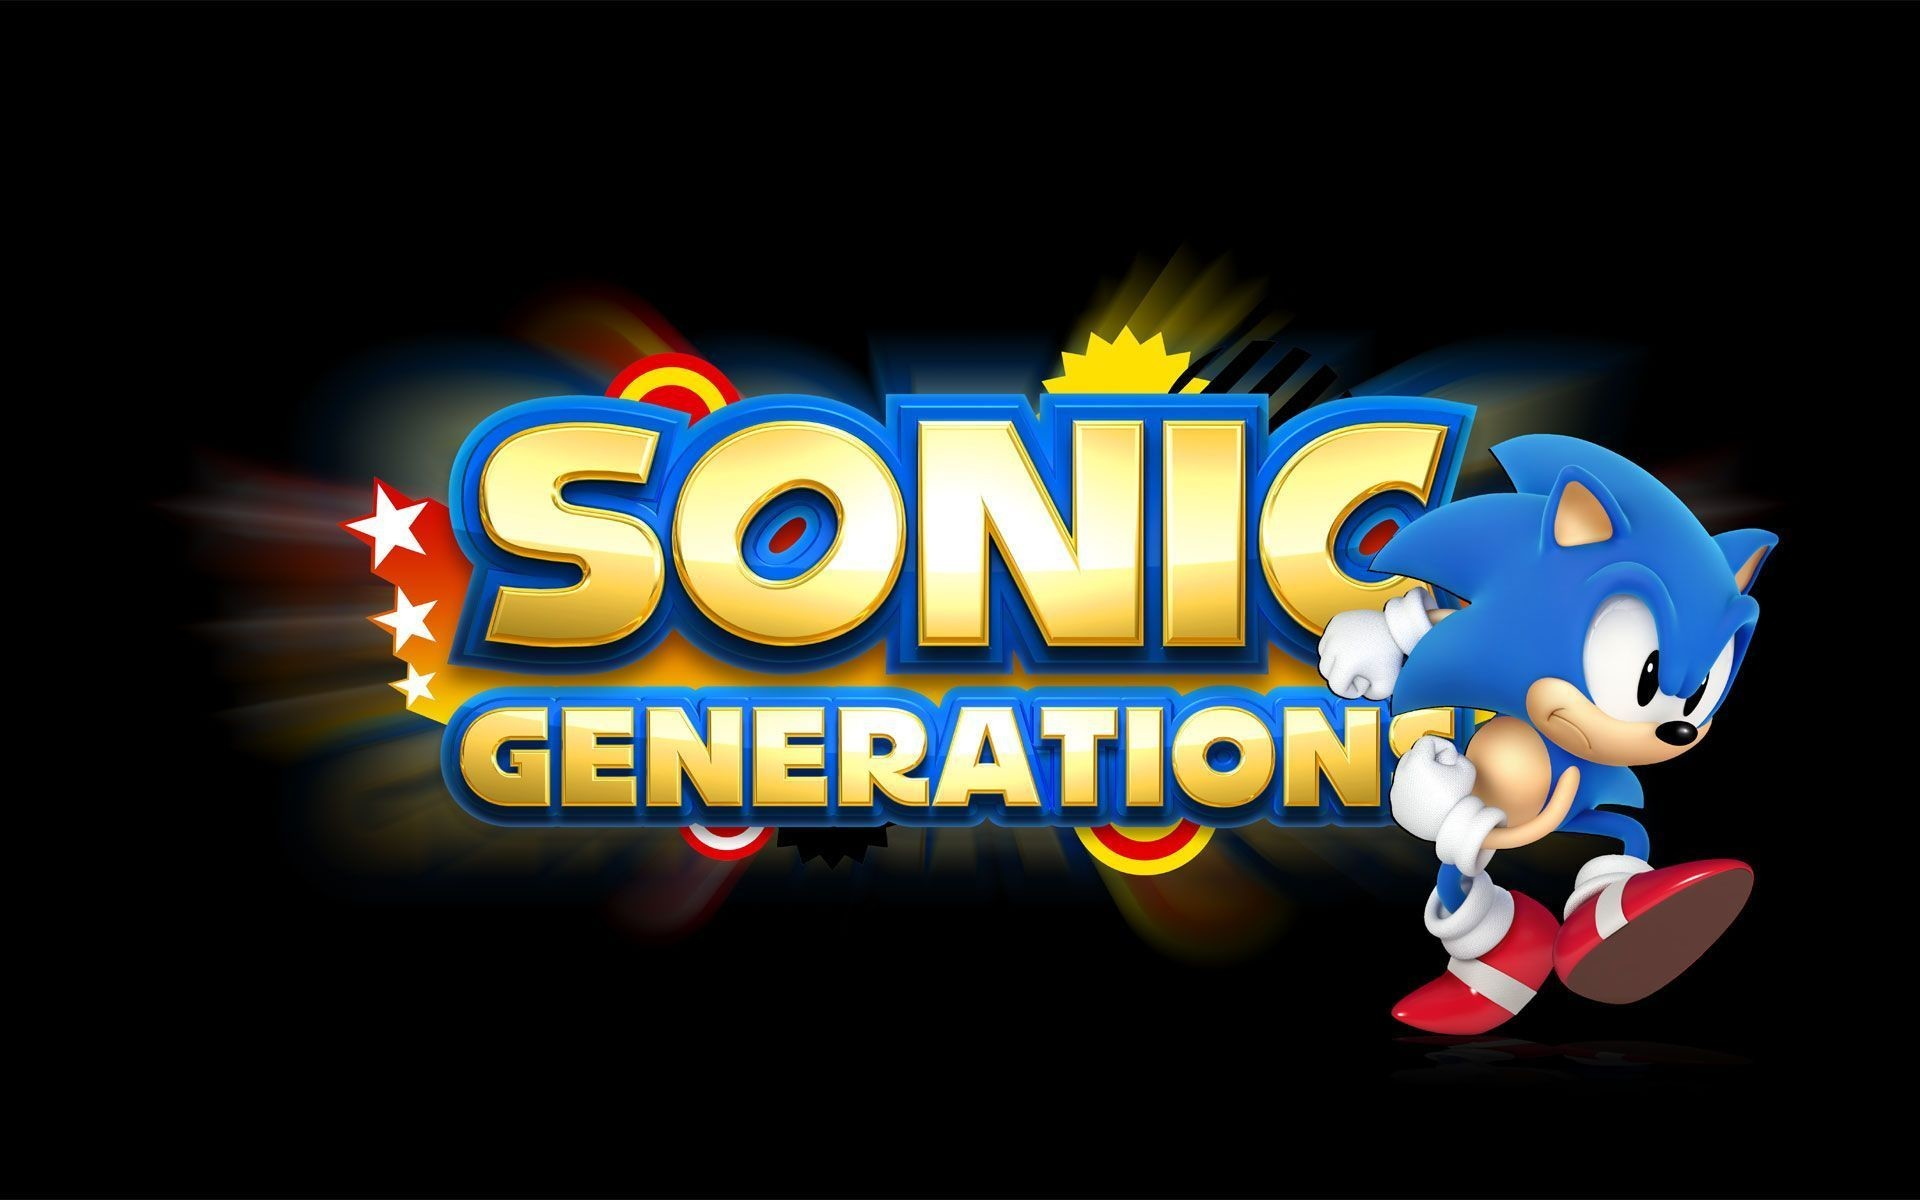 1920x1200 Sonic Generations Wallpaper - 204234